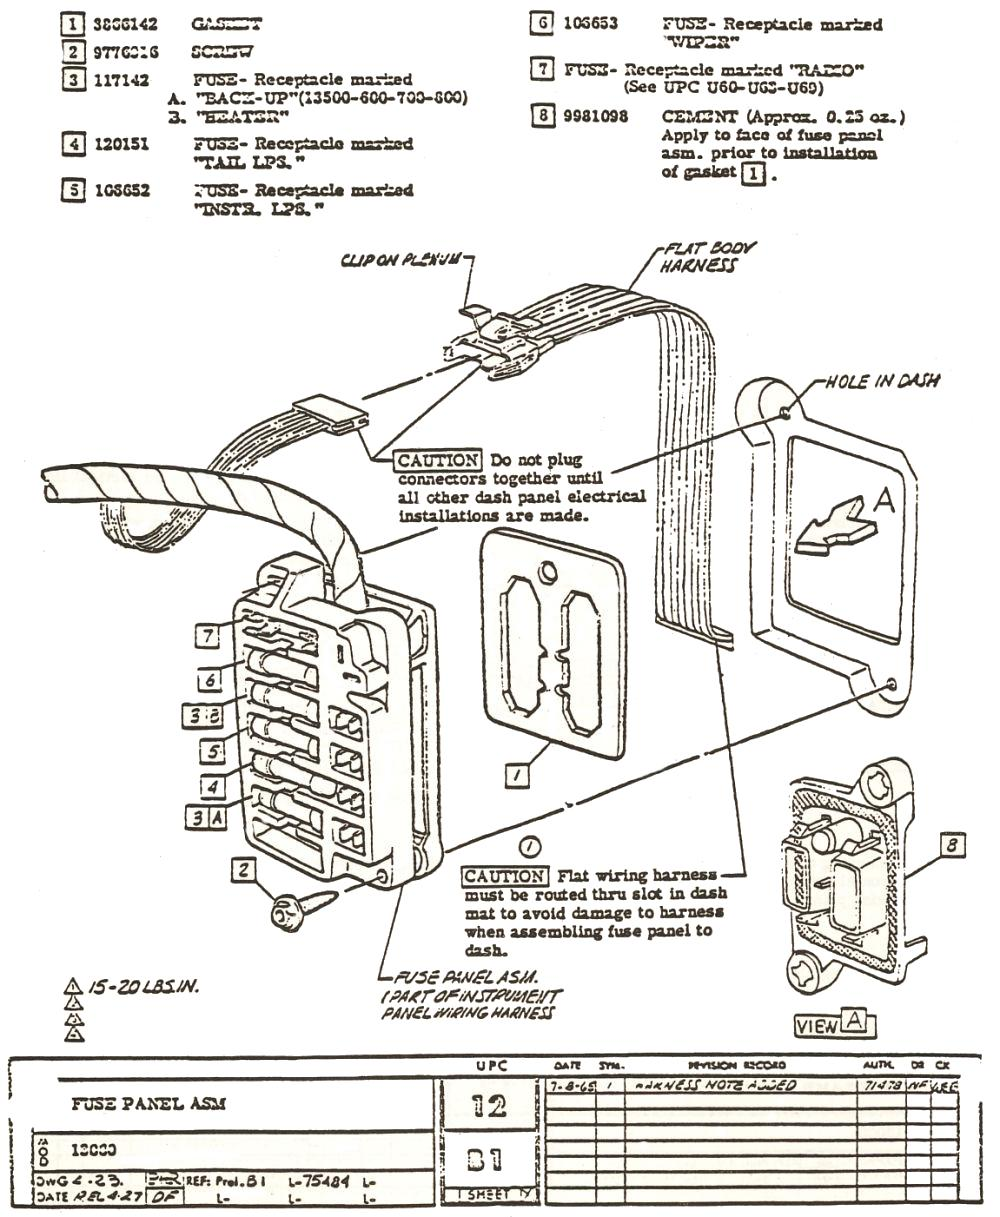 medium resolution of 1966 c10 chevy truck fuse box wiring diagram ame 1966 c10 chevy truck fuse box